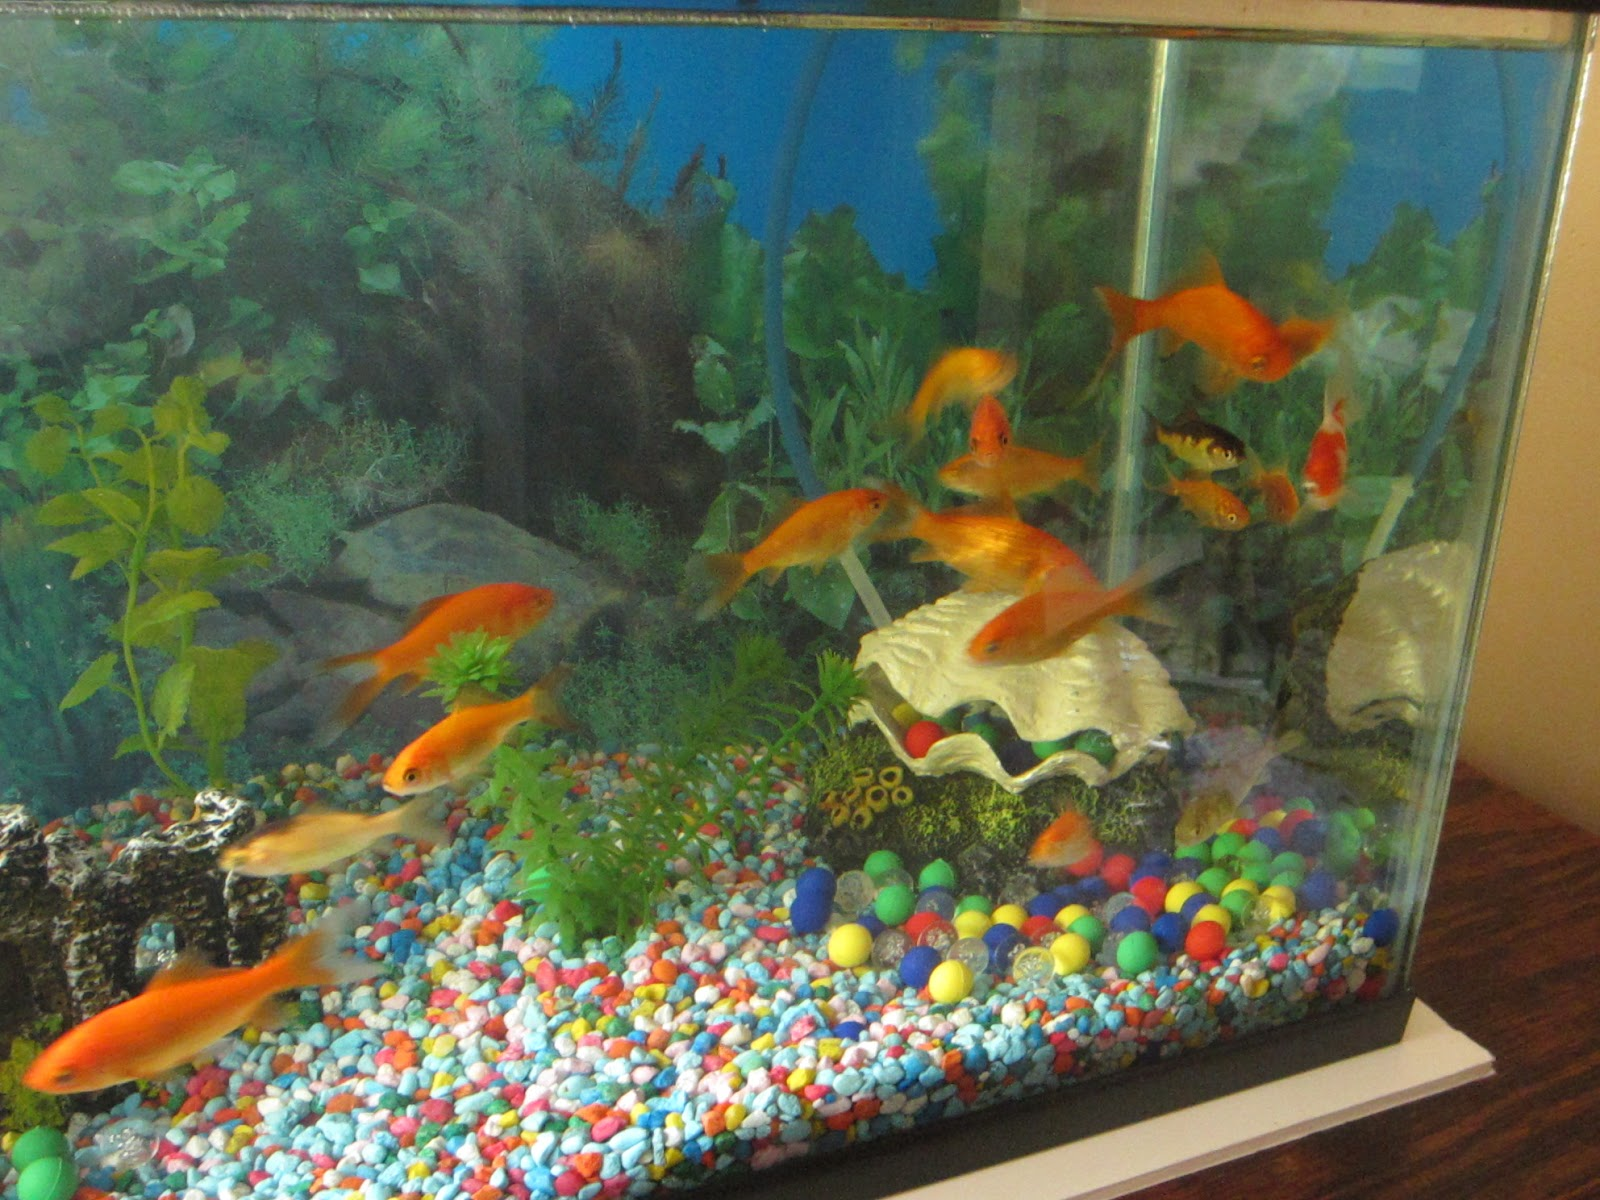 Fish tank home made decorations home design and decor for New fish tank